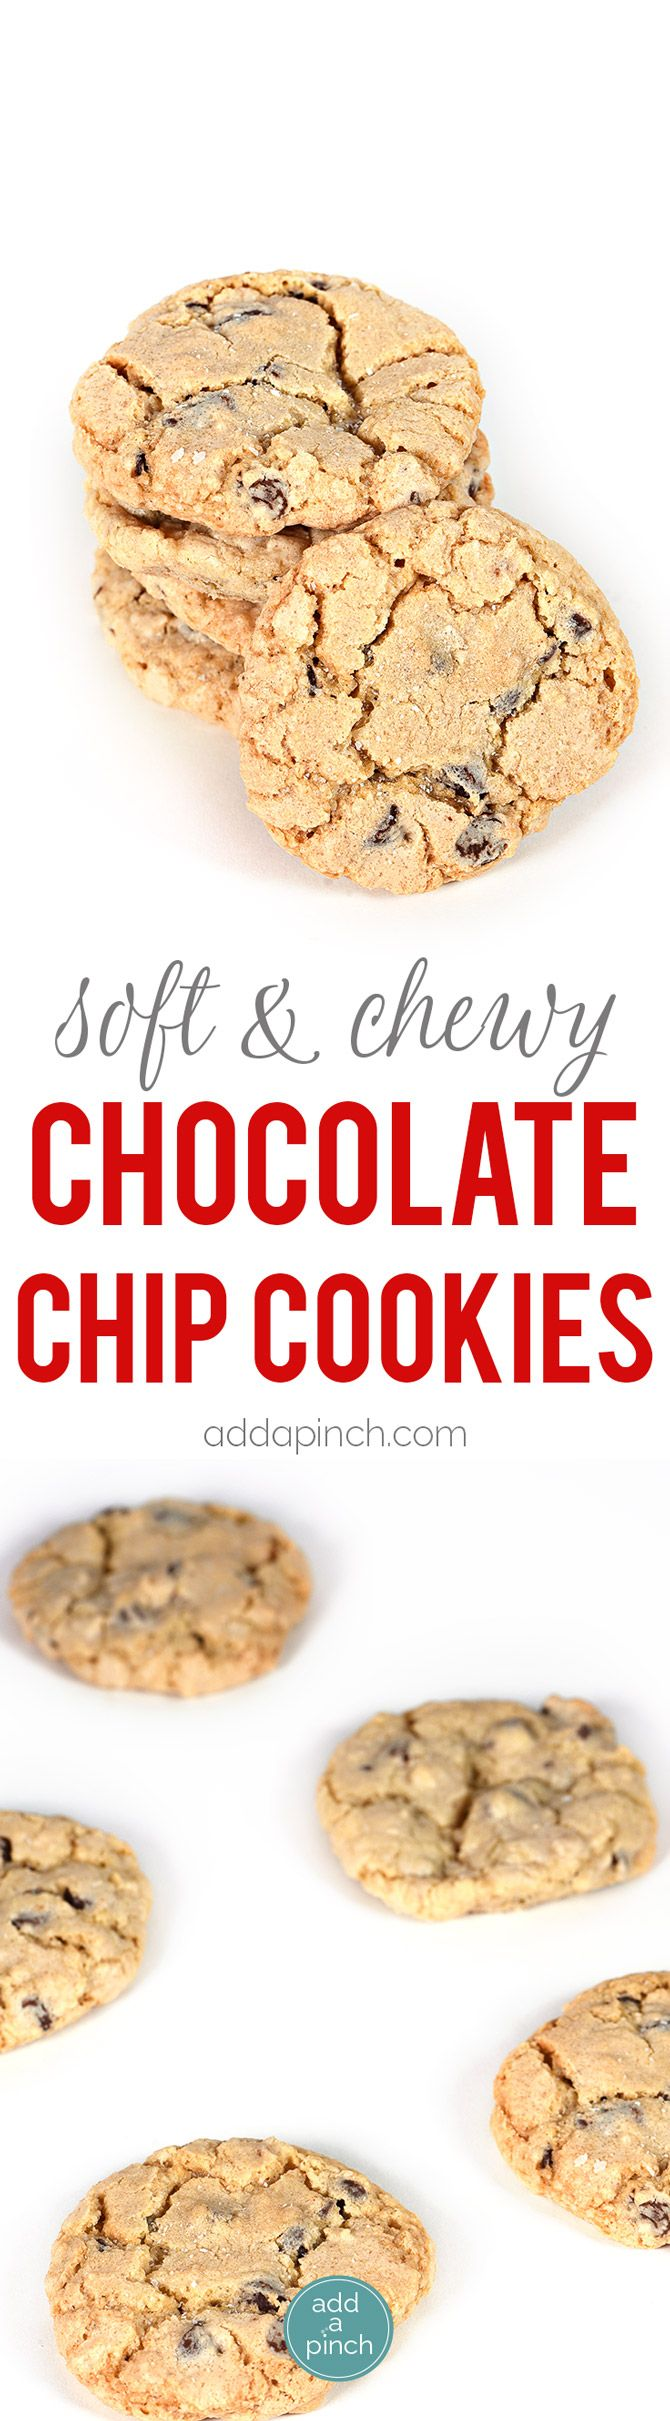 330 best CHOCOLATE CHIP COOKIE LOVERS images on Pinterest ...